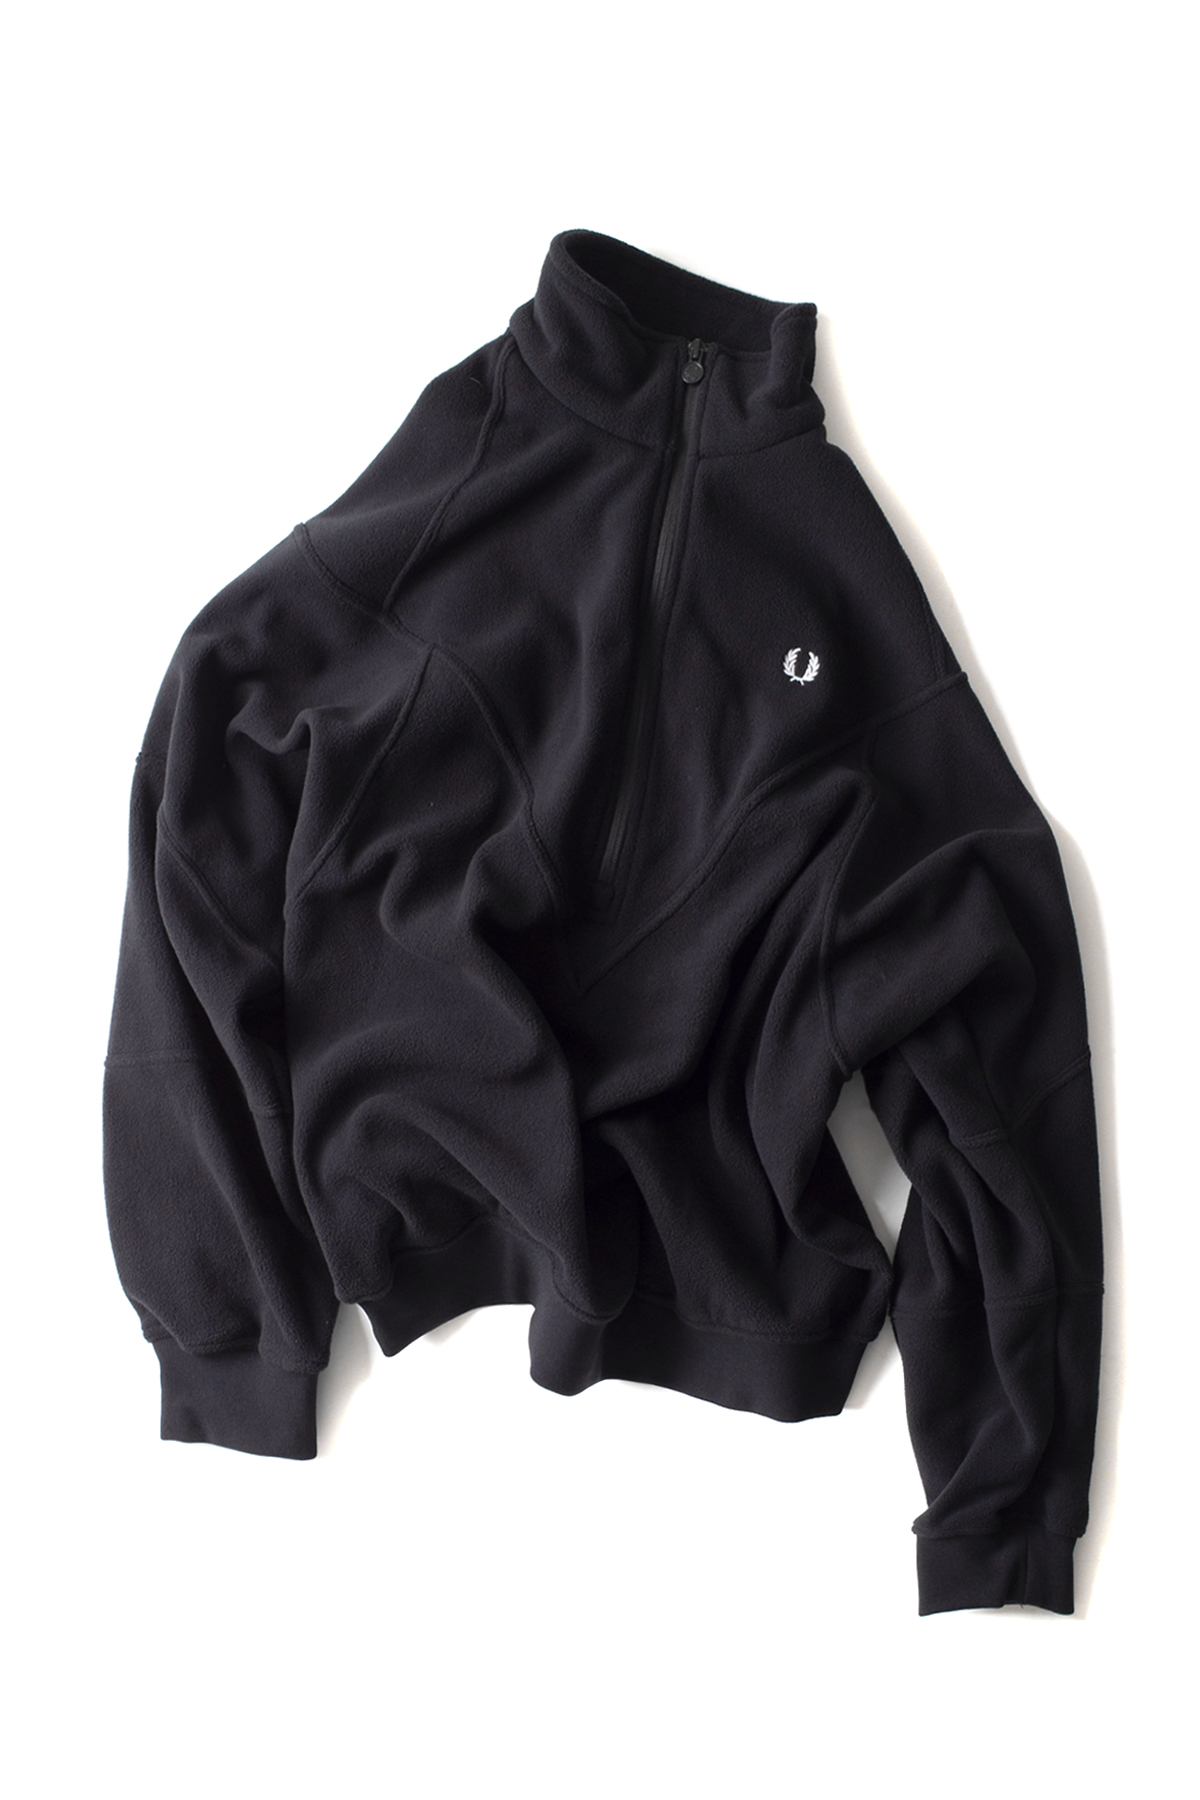 FRED PERRY : Monochrome Half Zip Fleece (Black)